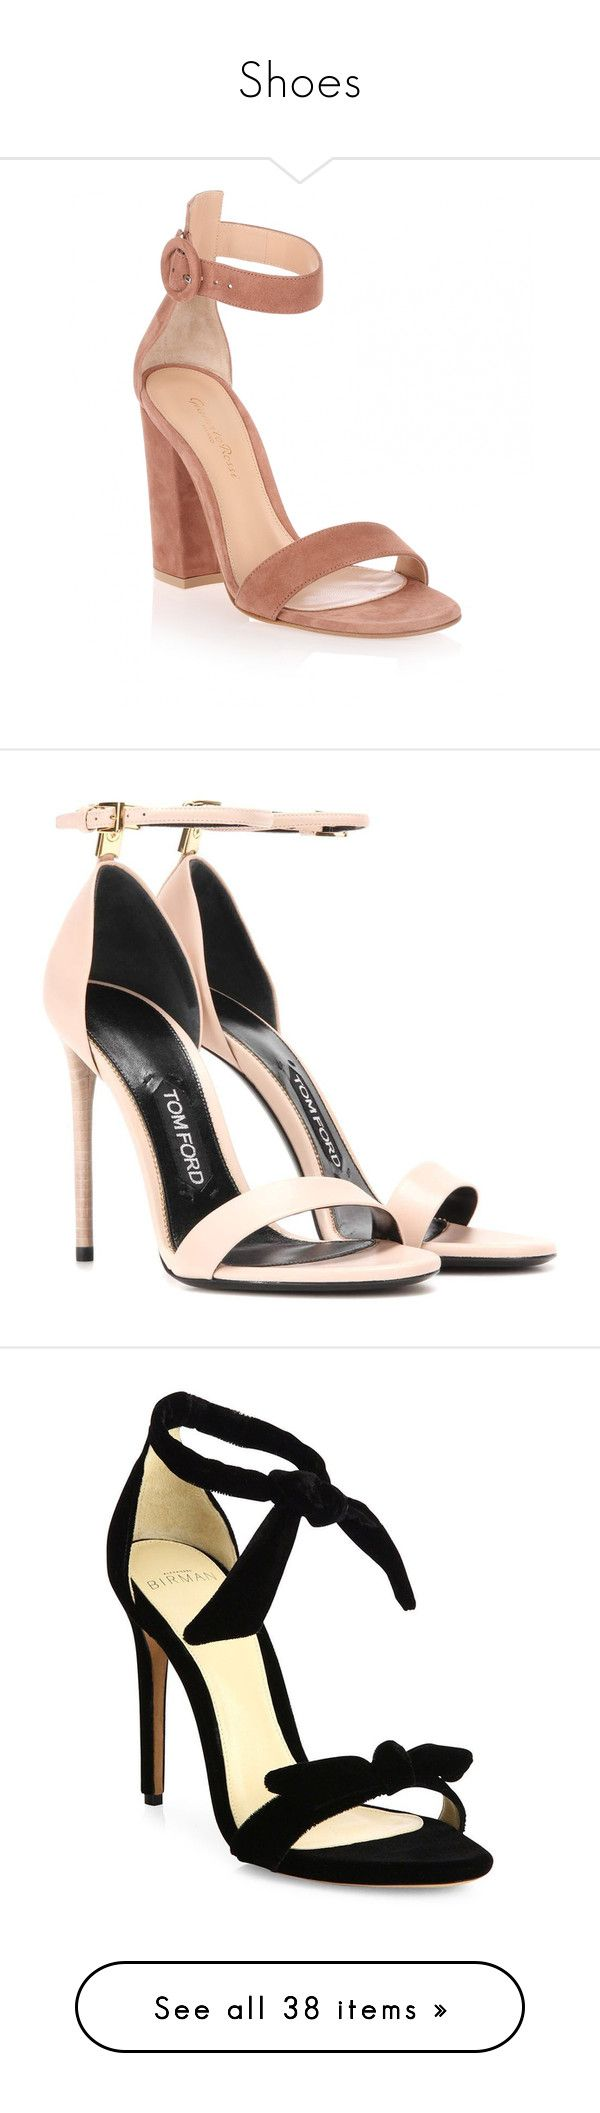 """Shoes"" by aliyah3williams ❤ liked on Polyvore featuring shoes, sandals, heels, zapatos, beige, heeled sandals, ankle tie sandals, block heel shoes, beige high heel sandals and block heel sandals"